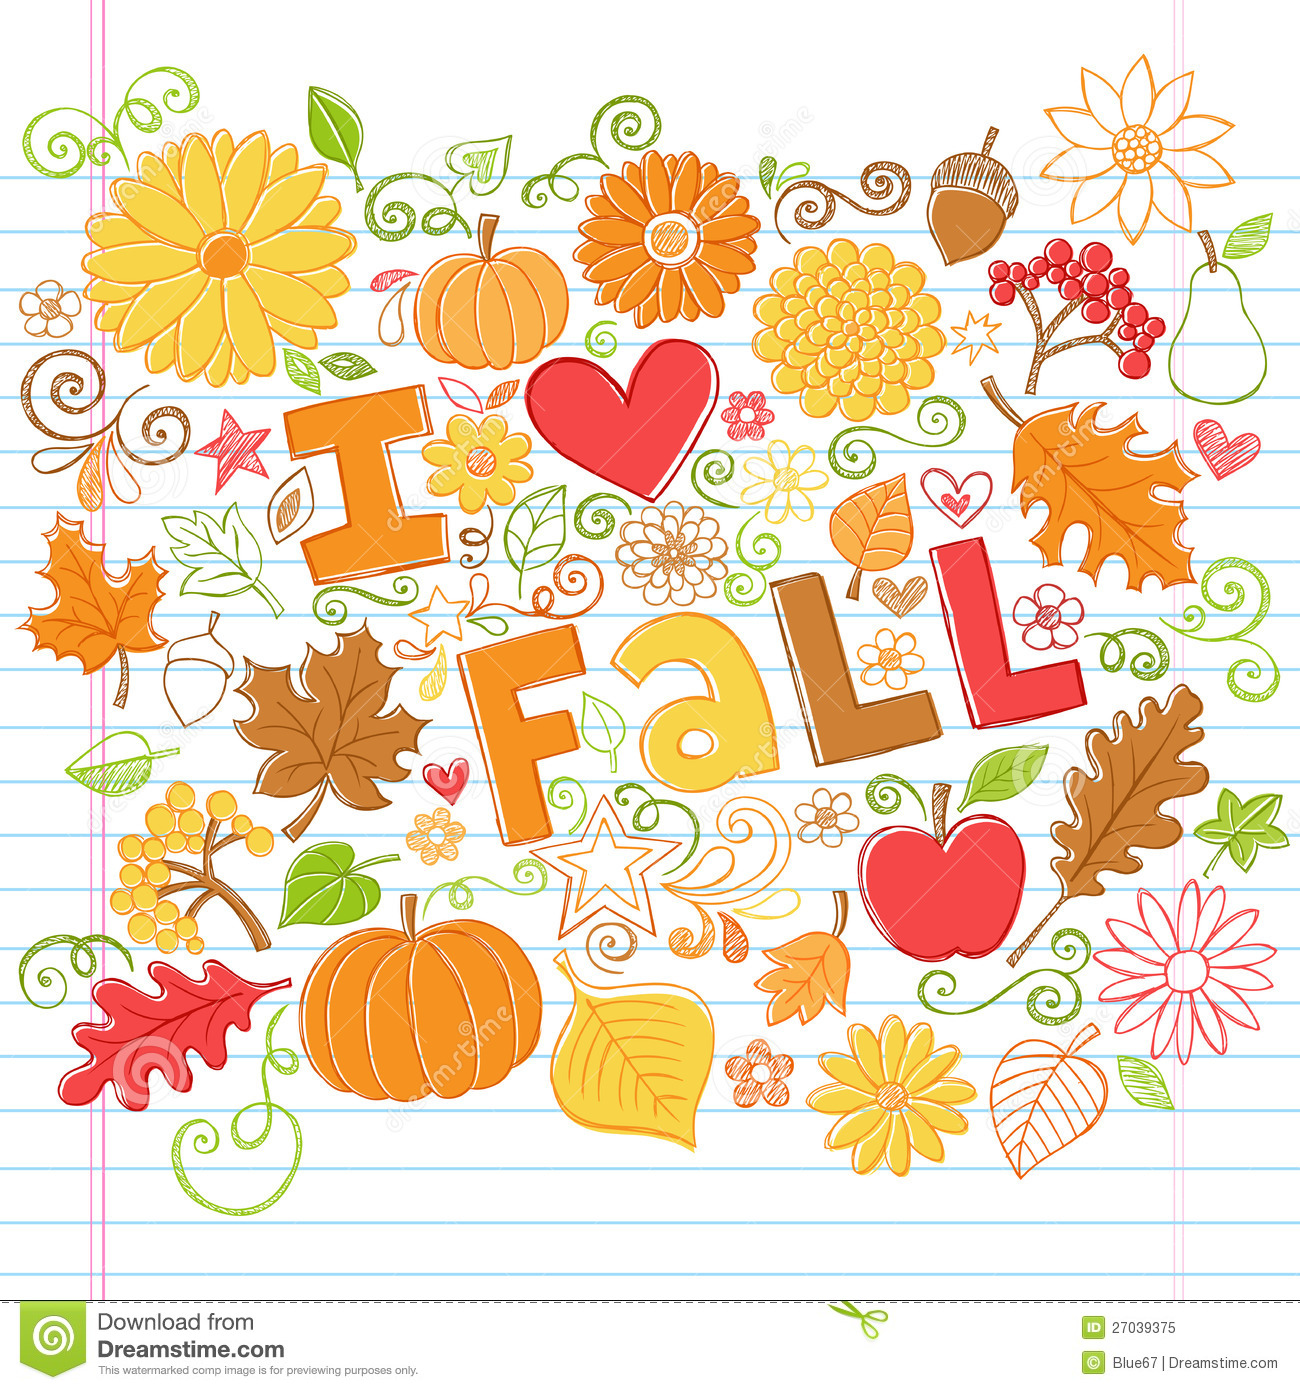 Love Fall Back To School Autumn Doodles Royalty Free Stock Photo ...